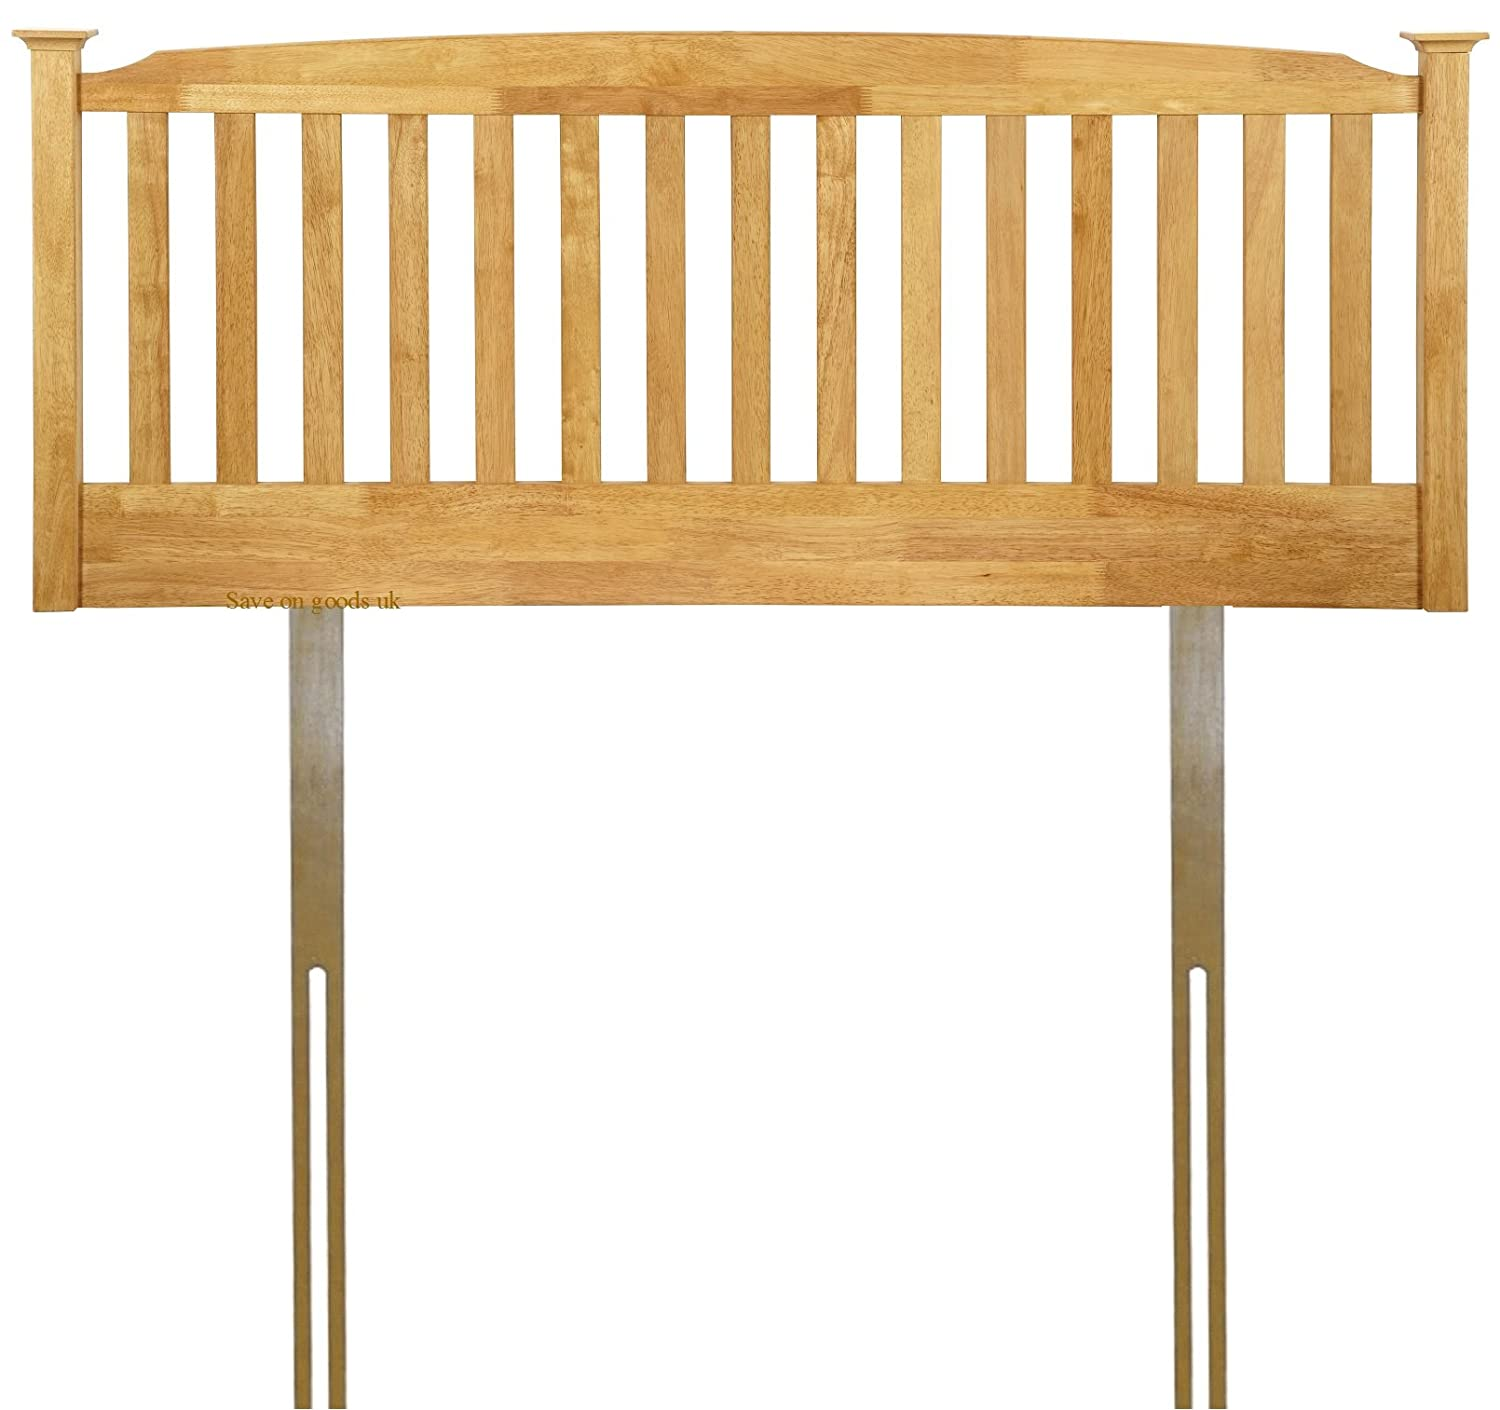 Save on Goods 3ft single,4ft,4ft6 double,5ft king,6ft white,oak headboard bed head end board.Solid wood wooden 3FT SINGLE, WHITE